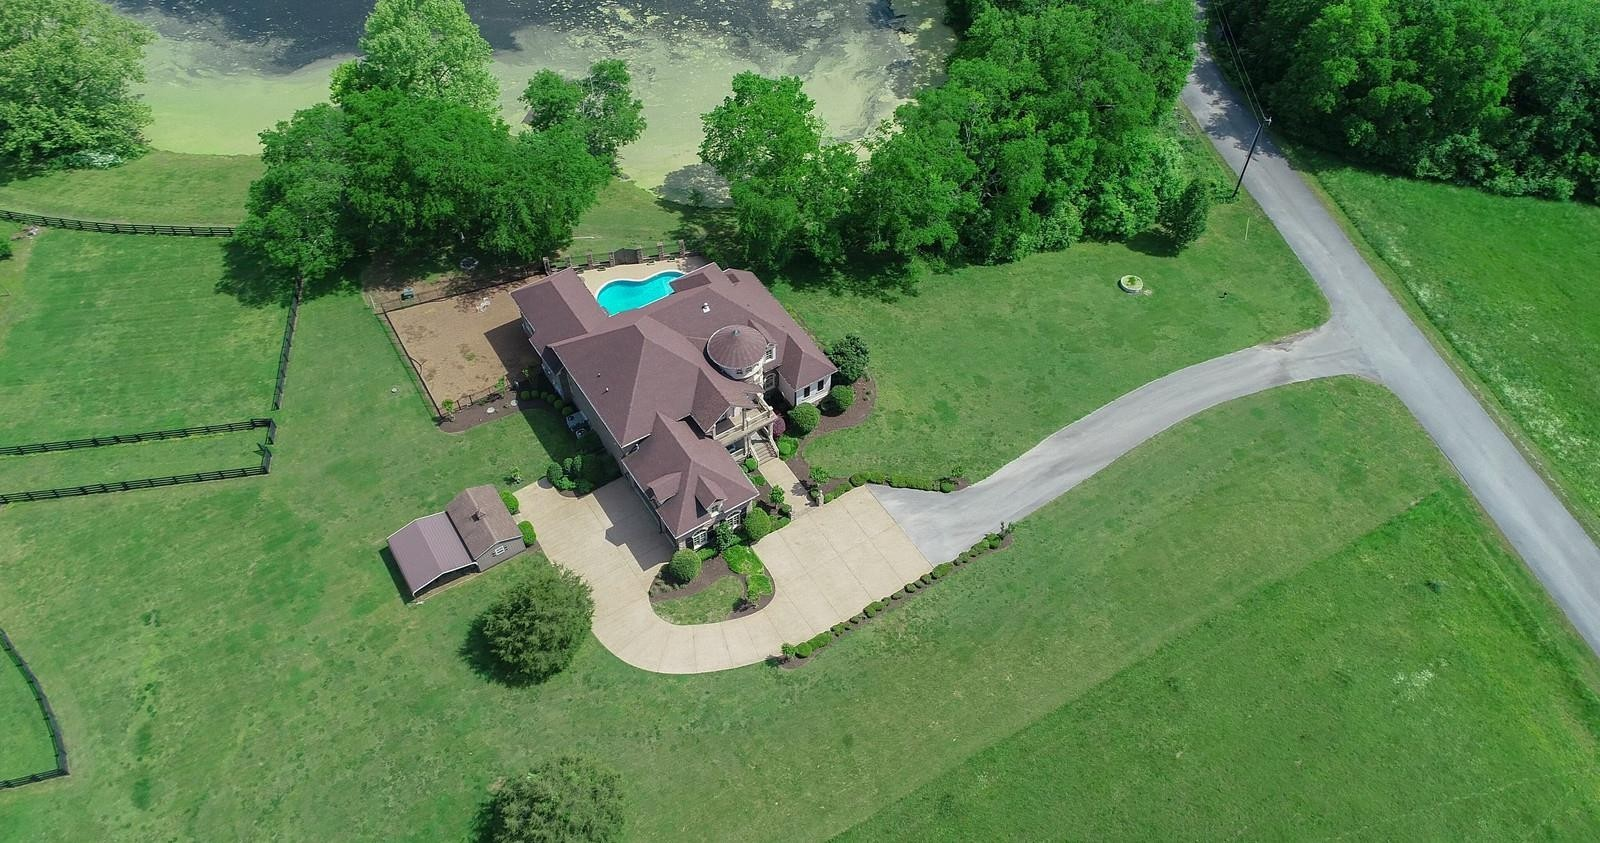 Amazing custom home on 98 private acres. Breathtaking views of it's own 3 acre lake w/dock & pool. Home has open gourmet kitch & sunroom w/views of lake. Amazing master w/private terrace & huge closet. Gated land has it's own water source. Grow your own food. 2 addl homes on property. Surrounded by the Harpeth River for privacy & security. During these uncertain times, own your own private paradise. Easy access to Brentwood, Franklin, & Nashville.